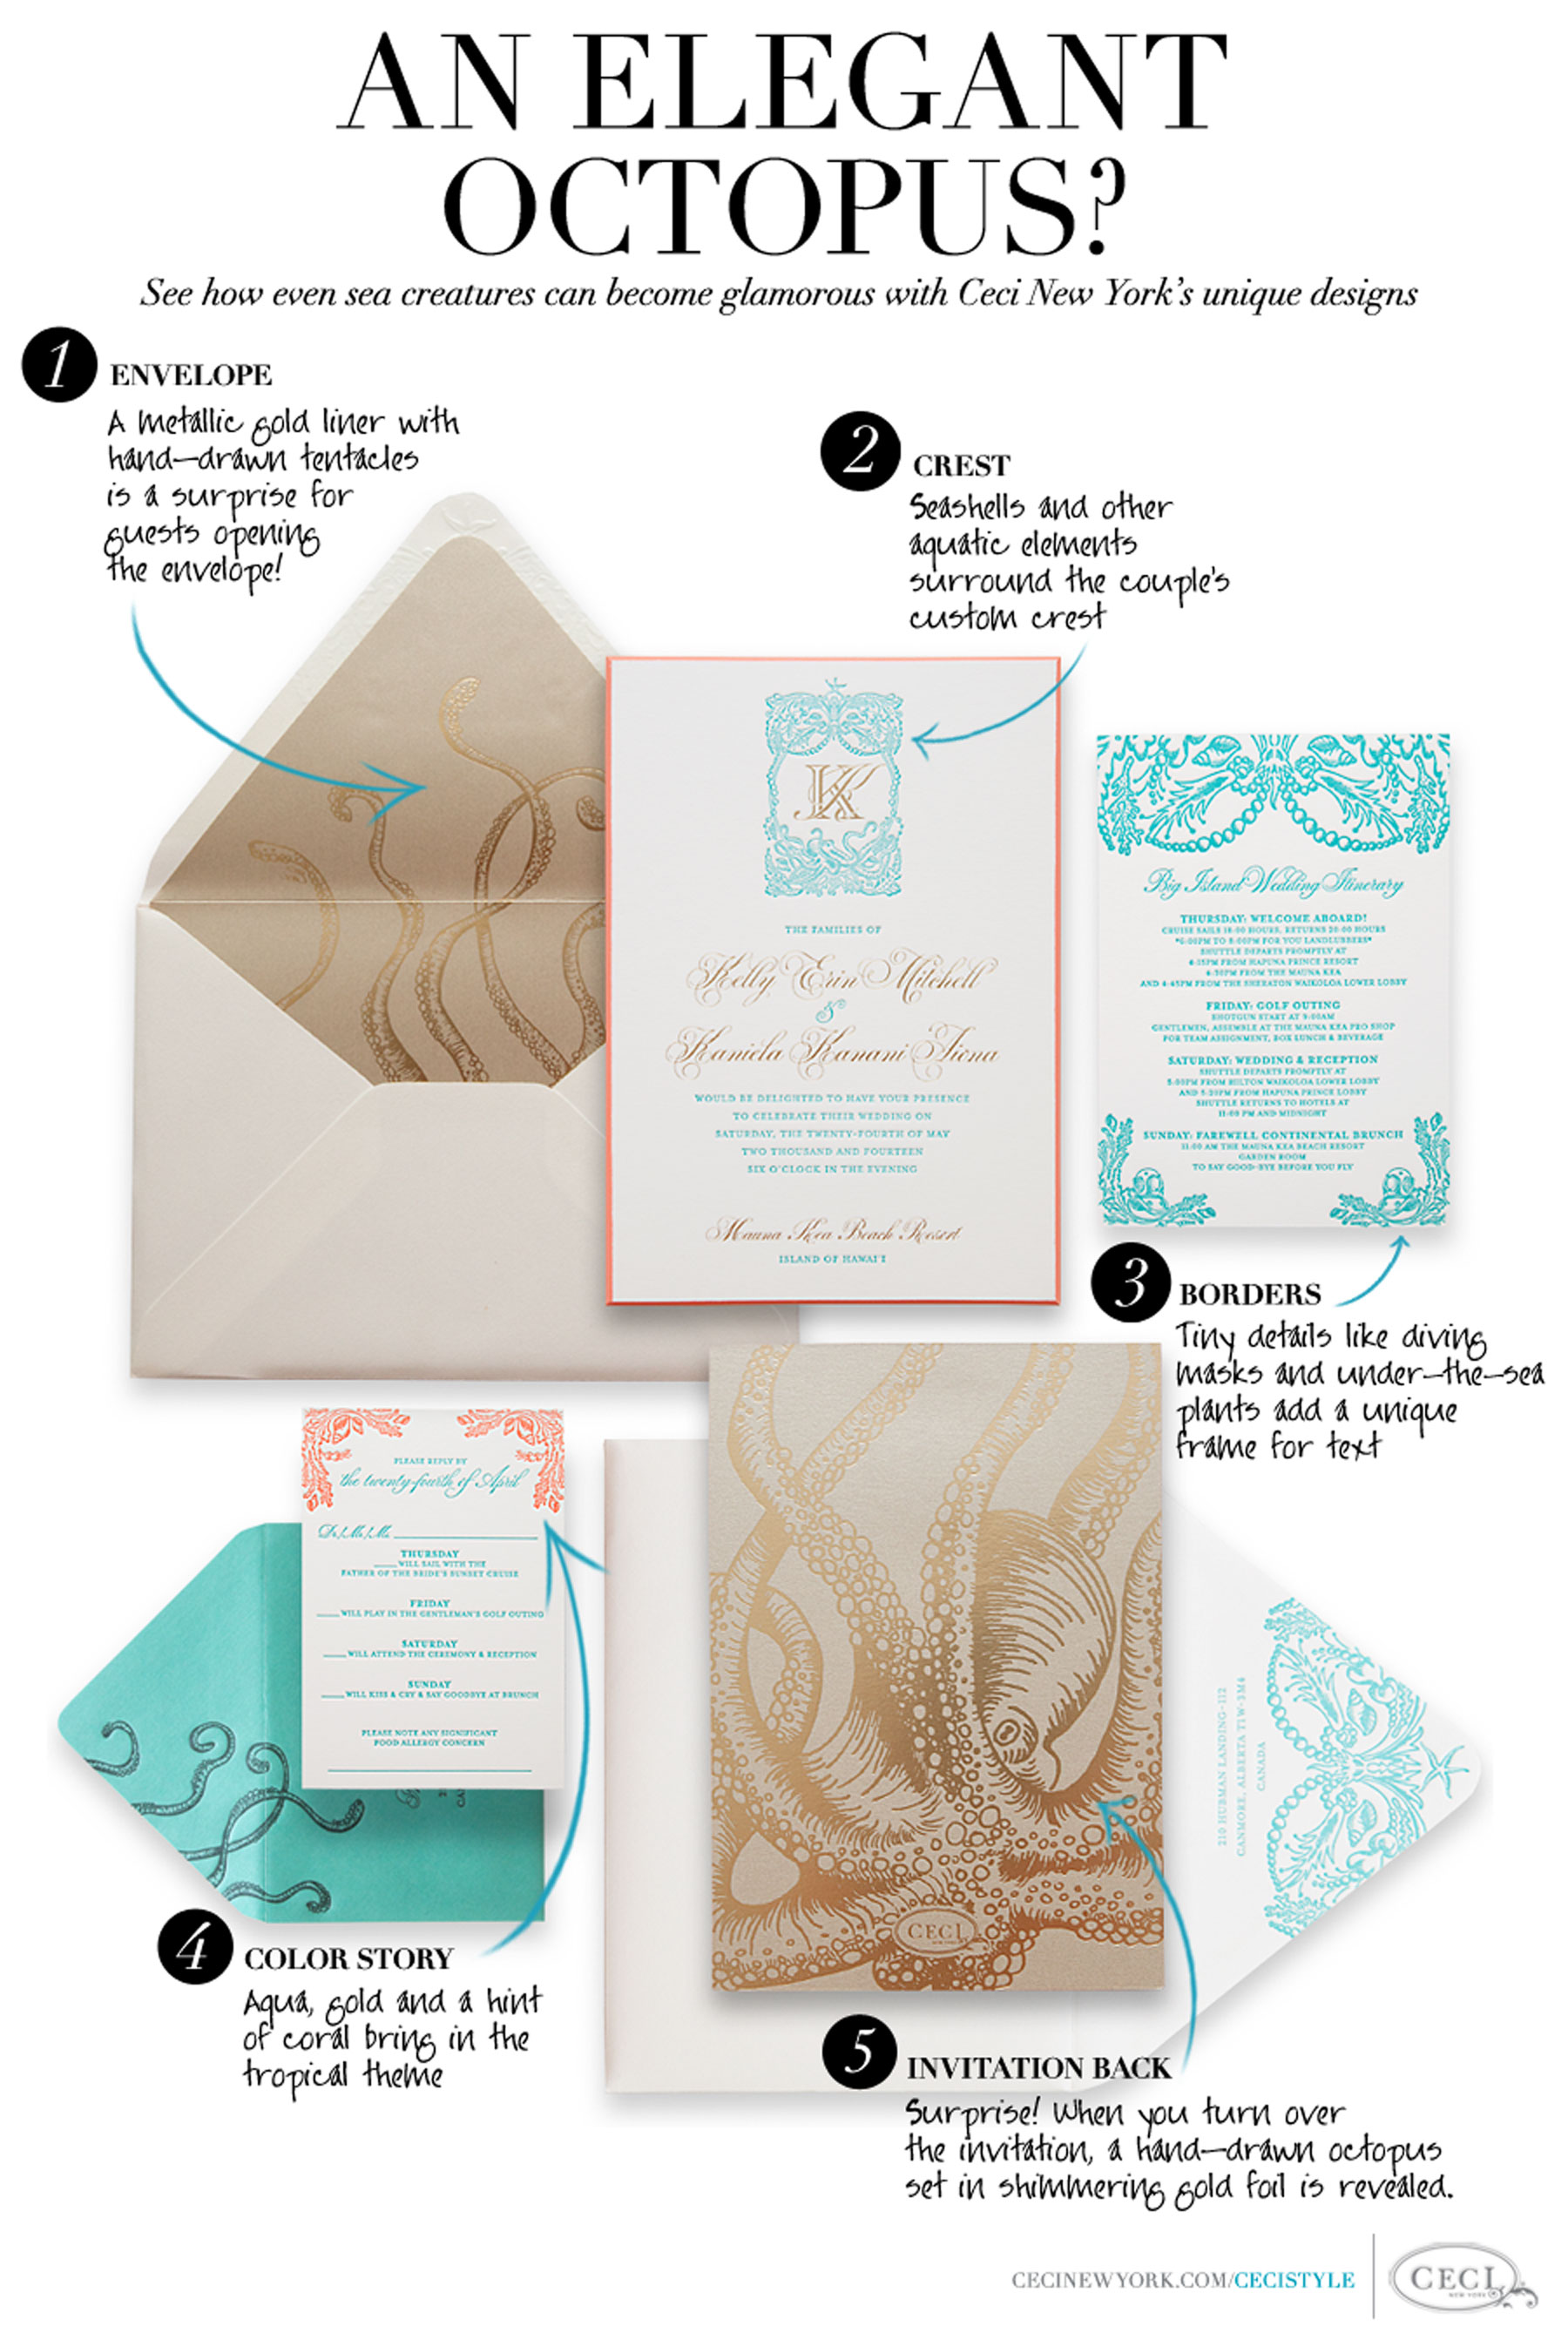 An Elegant Octopus? See how even sea cratures can become glamorous with Ceci New York's unique designs. 1. Envelope: A metallic gold liner with hand-drawn tentacles is a surprise for guests opening it! 2. Monogram: Seashells and other aquatic elements surround the couple's custom monogram. 3. Borders: Tiny details like diving masks and under-the-sea plants add a unique frame for text. 4. Color Story: Aqua, gold and a hint of coral bring in the tropical theme. 5. Invitation Back: Surprise! When you turn over the invitation, a hand-drawn octopus set in shimmering gold foil is revealed.